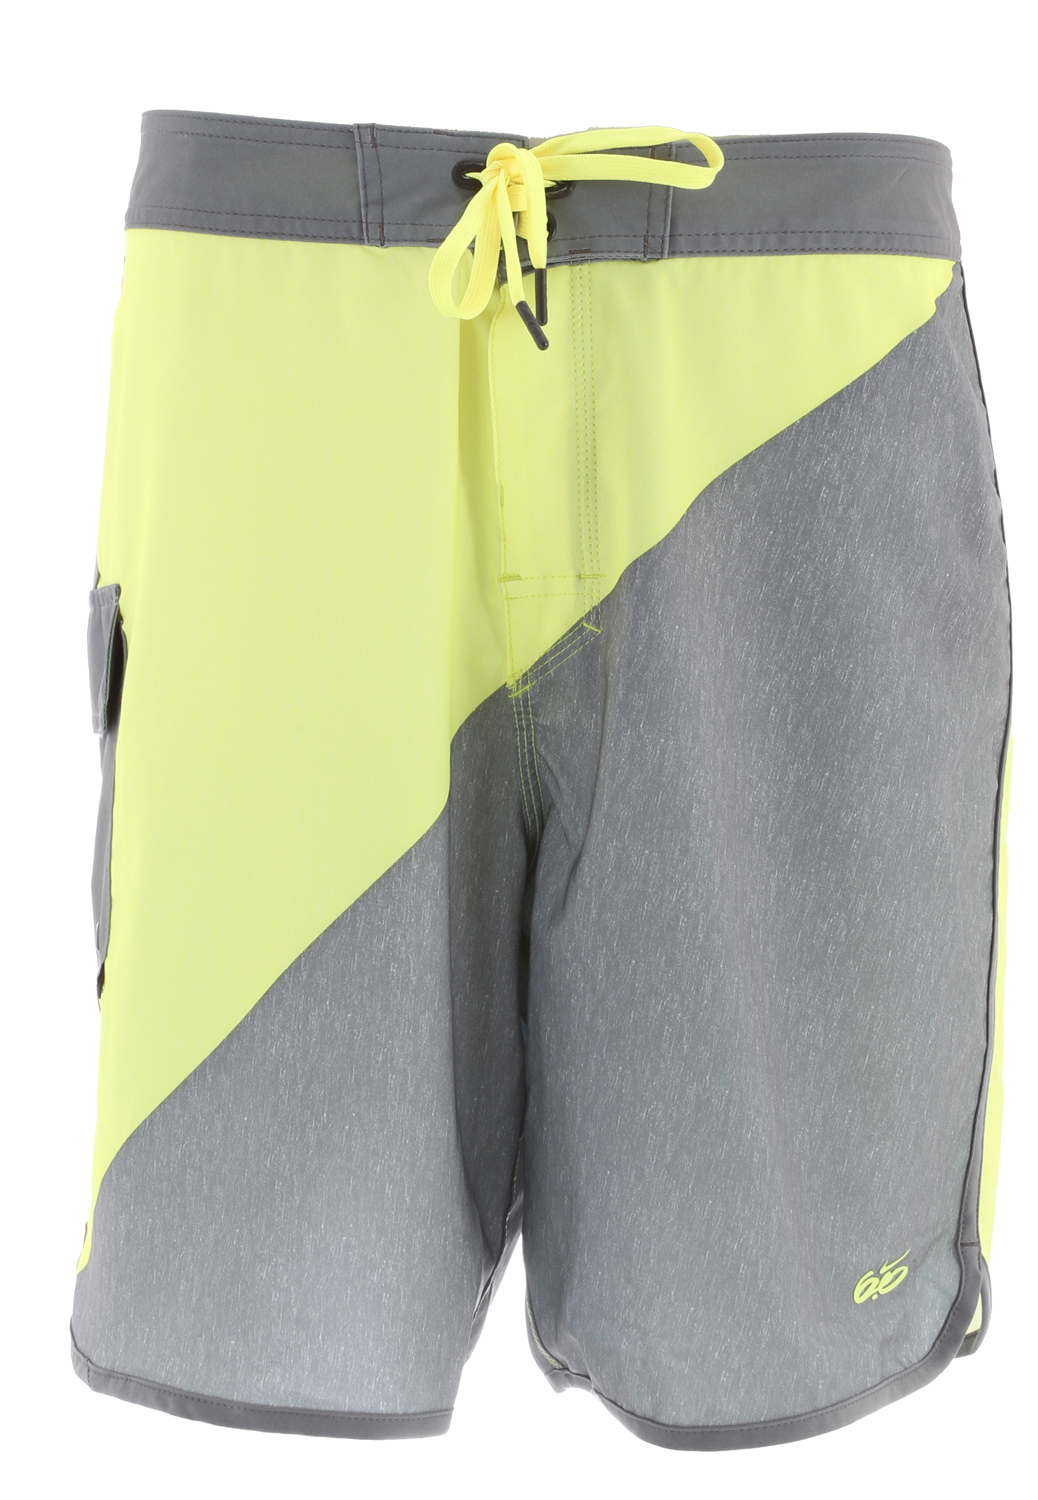 Skateboard Made with stretch fabric for excellent mobility, the Nike Gym Print Men's Boardshorts deliver comfort in and out of the water. Bold color contrast lends these shorts a sharp look that stands out.Key Features of the Nike Gym Boardshorts: Lace-up closure at waist for an adjustable fit Side flap pocket for secure storage Color-block pattern for style Logo screen print at left hem Fabric: 85% recycled polyester/15% spandex Machine wash - $45.95